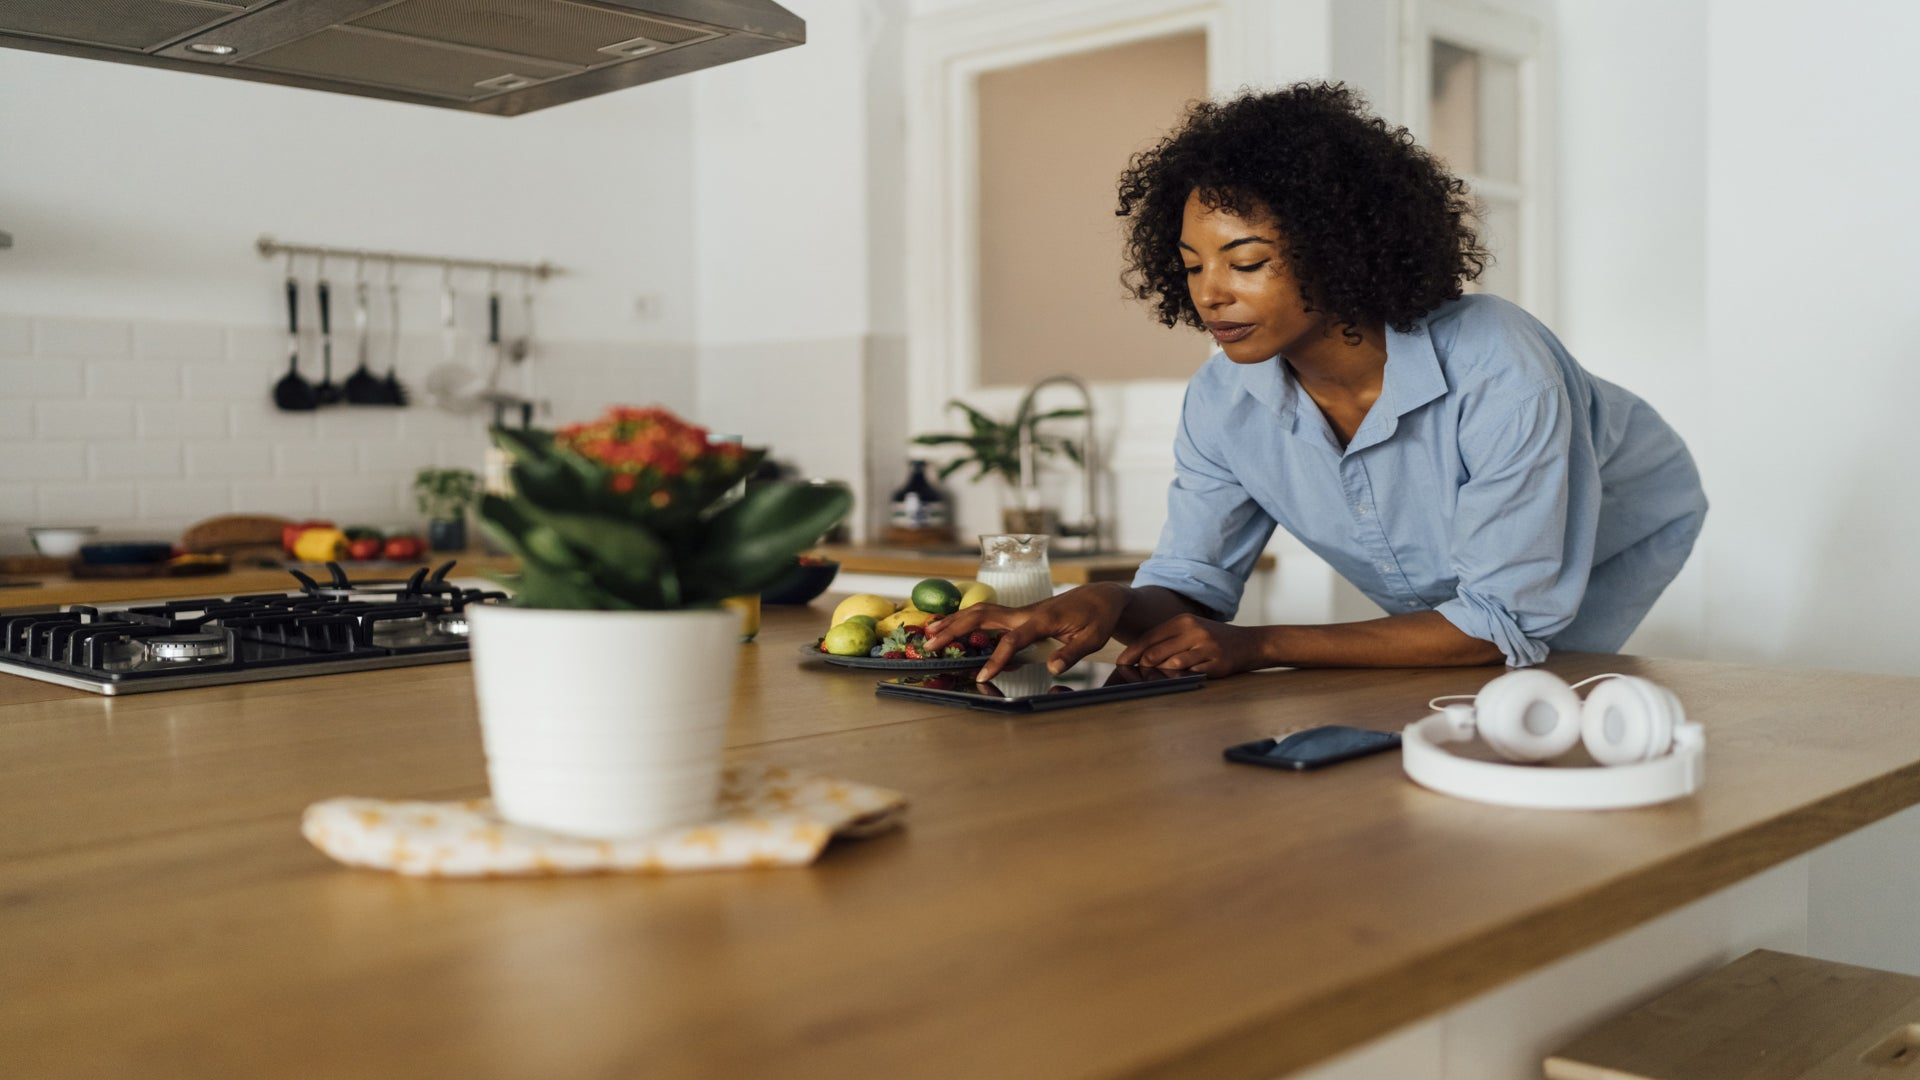 The Upgrade: 5 Tech Items That Will Make Your Home Life Easier